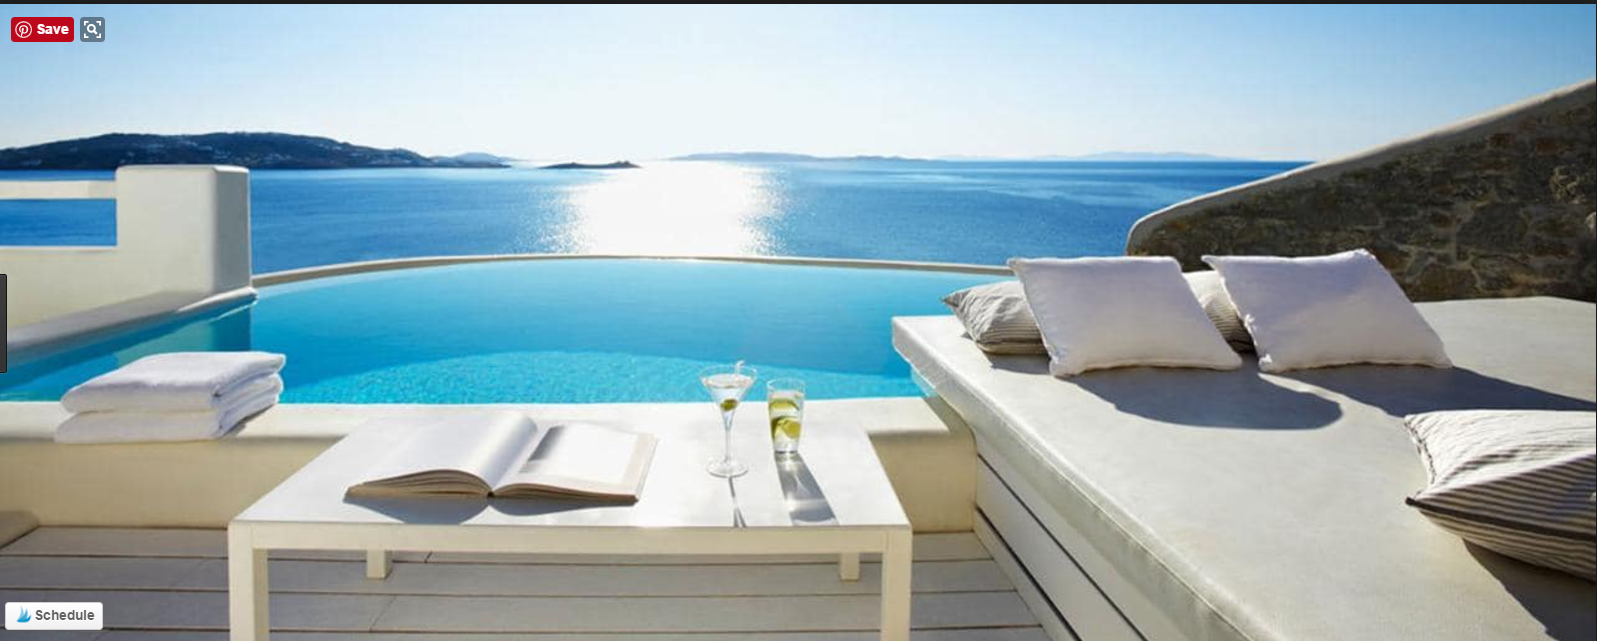 Cavo Tagoo Hotel in Mykonos - One of the best 5 star hotels in Mykonos